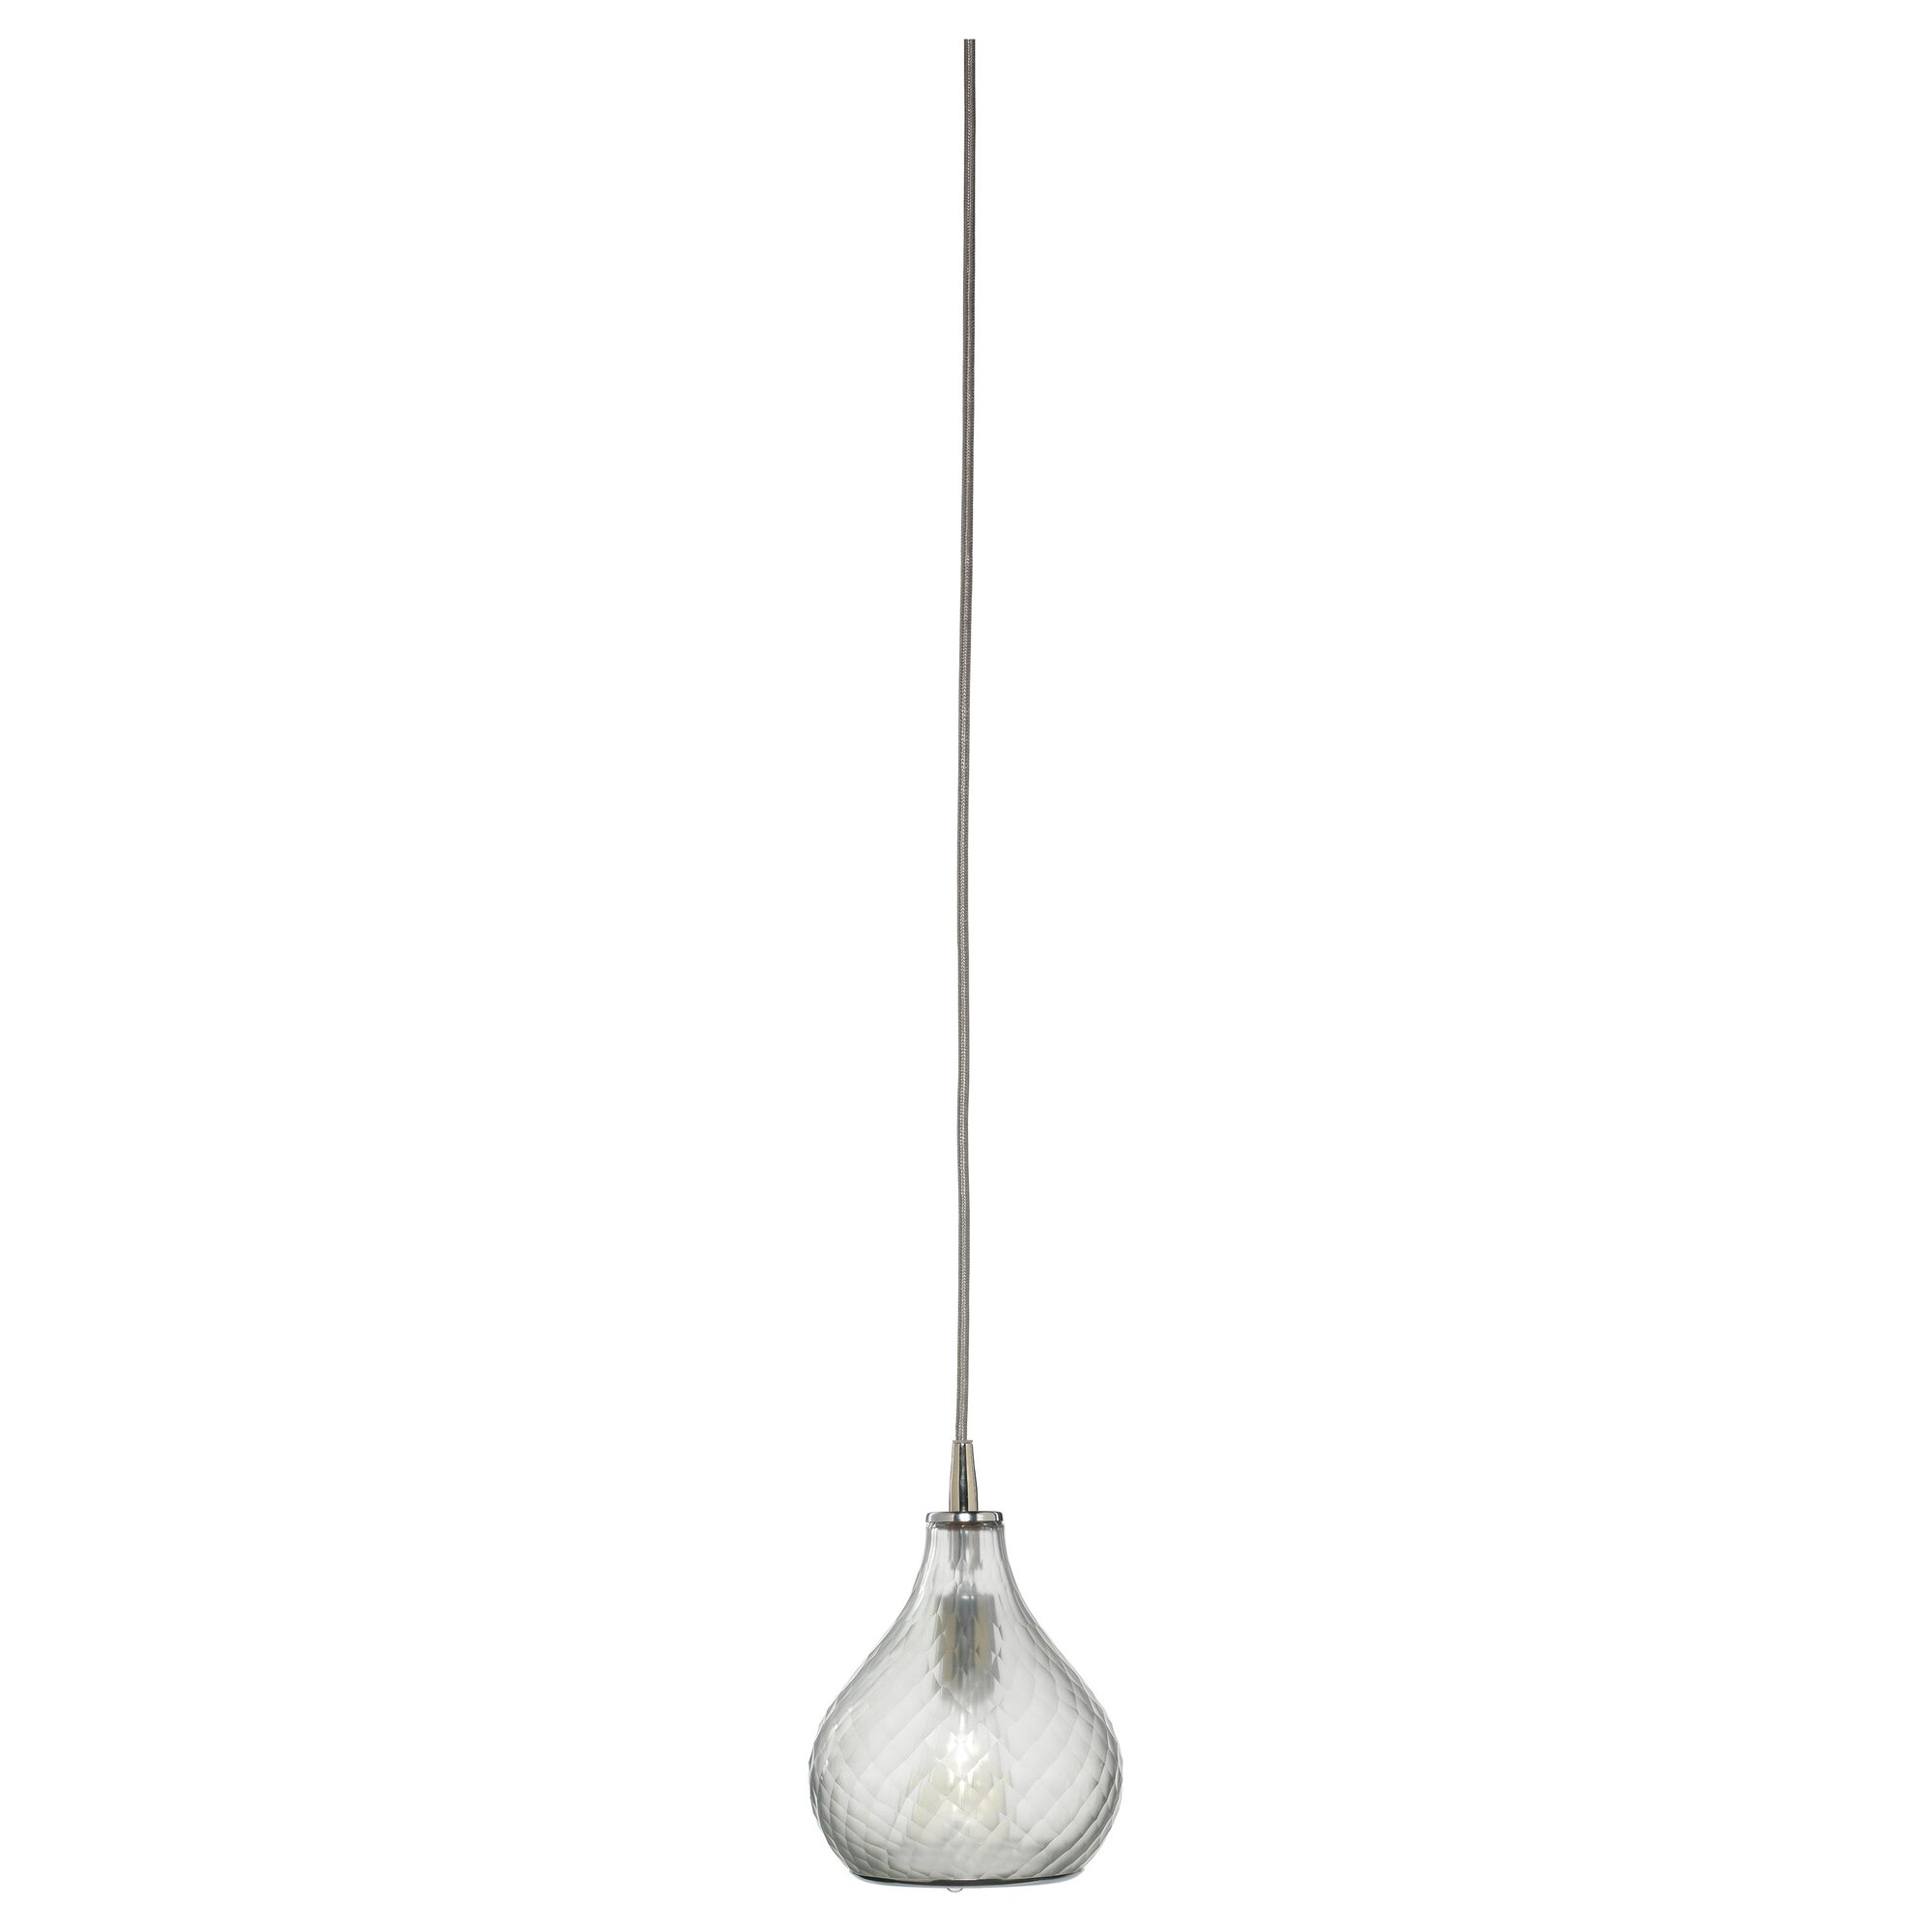 Jamie Young Company Cloud 1 Light Mini Pendant Amp Reviews